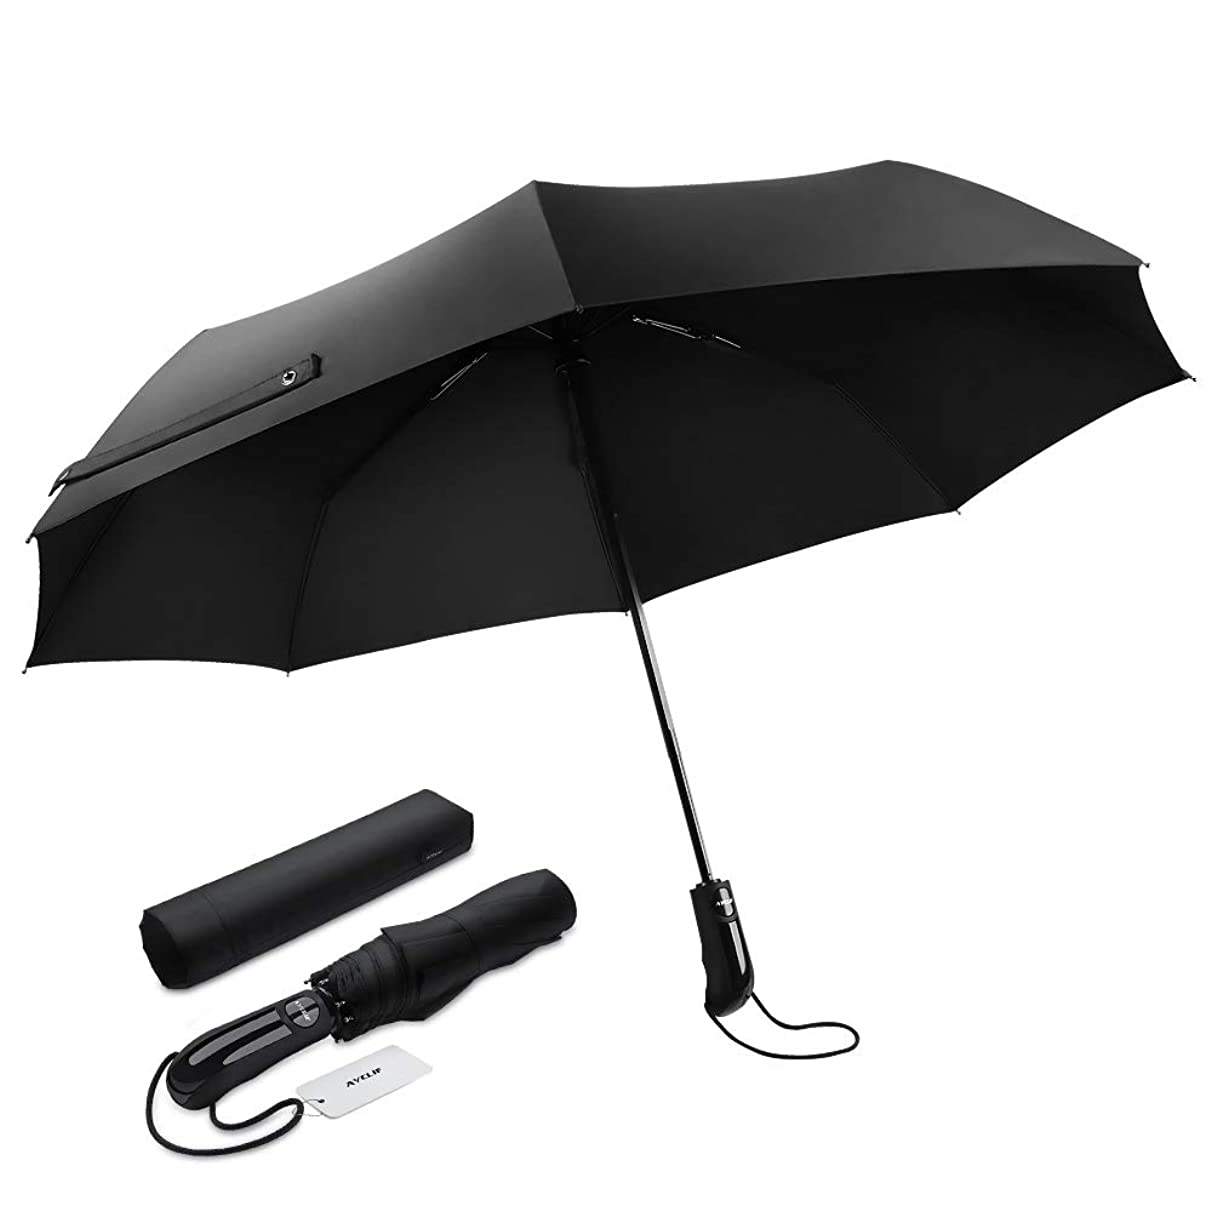 AYCLIF Travel Umbrella, Lightweight Automatic Compact Travel Portable Rain Umbrella Ergonomic Handle, Easy Carrying Auto Open Close Automatic Umbrella Windproof Outdoor Golf Black Umbrella